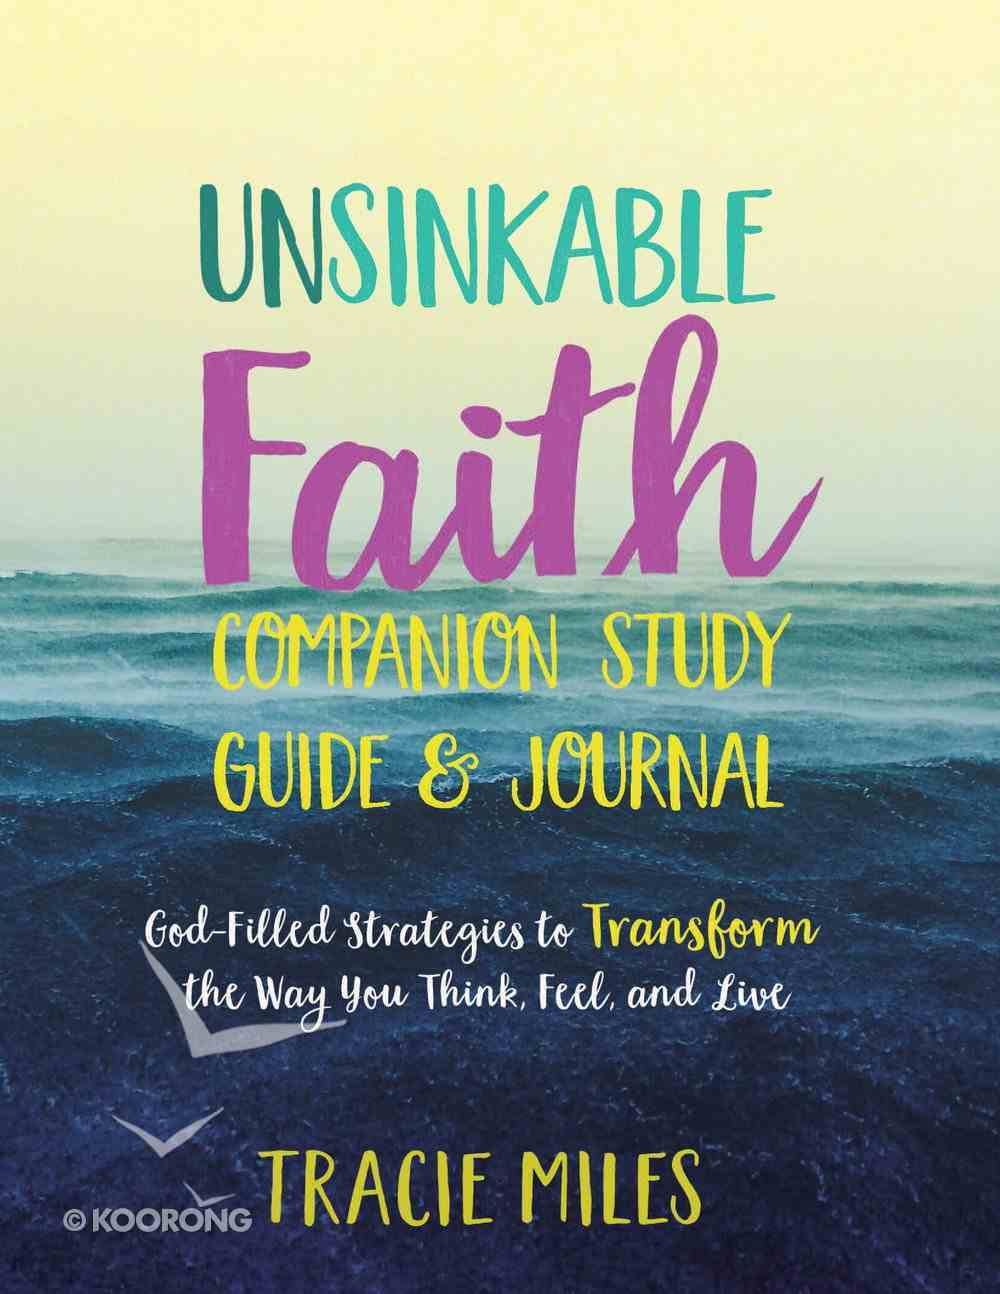 Unsinkable Faith: God-Filled Strategies to Transform the Way You Think, Feel and Live (Study Guide) eBook